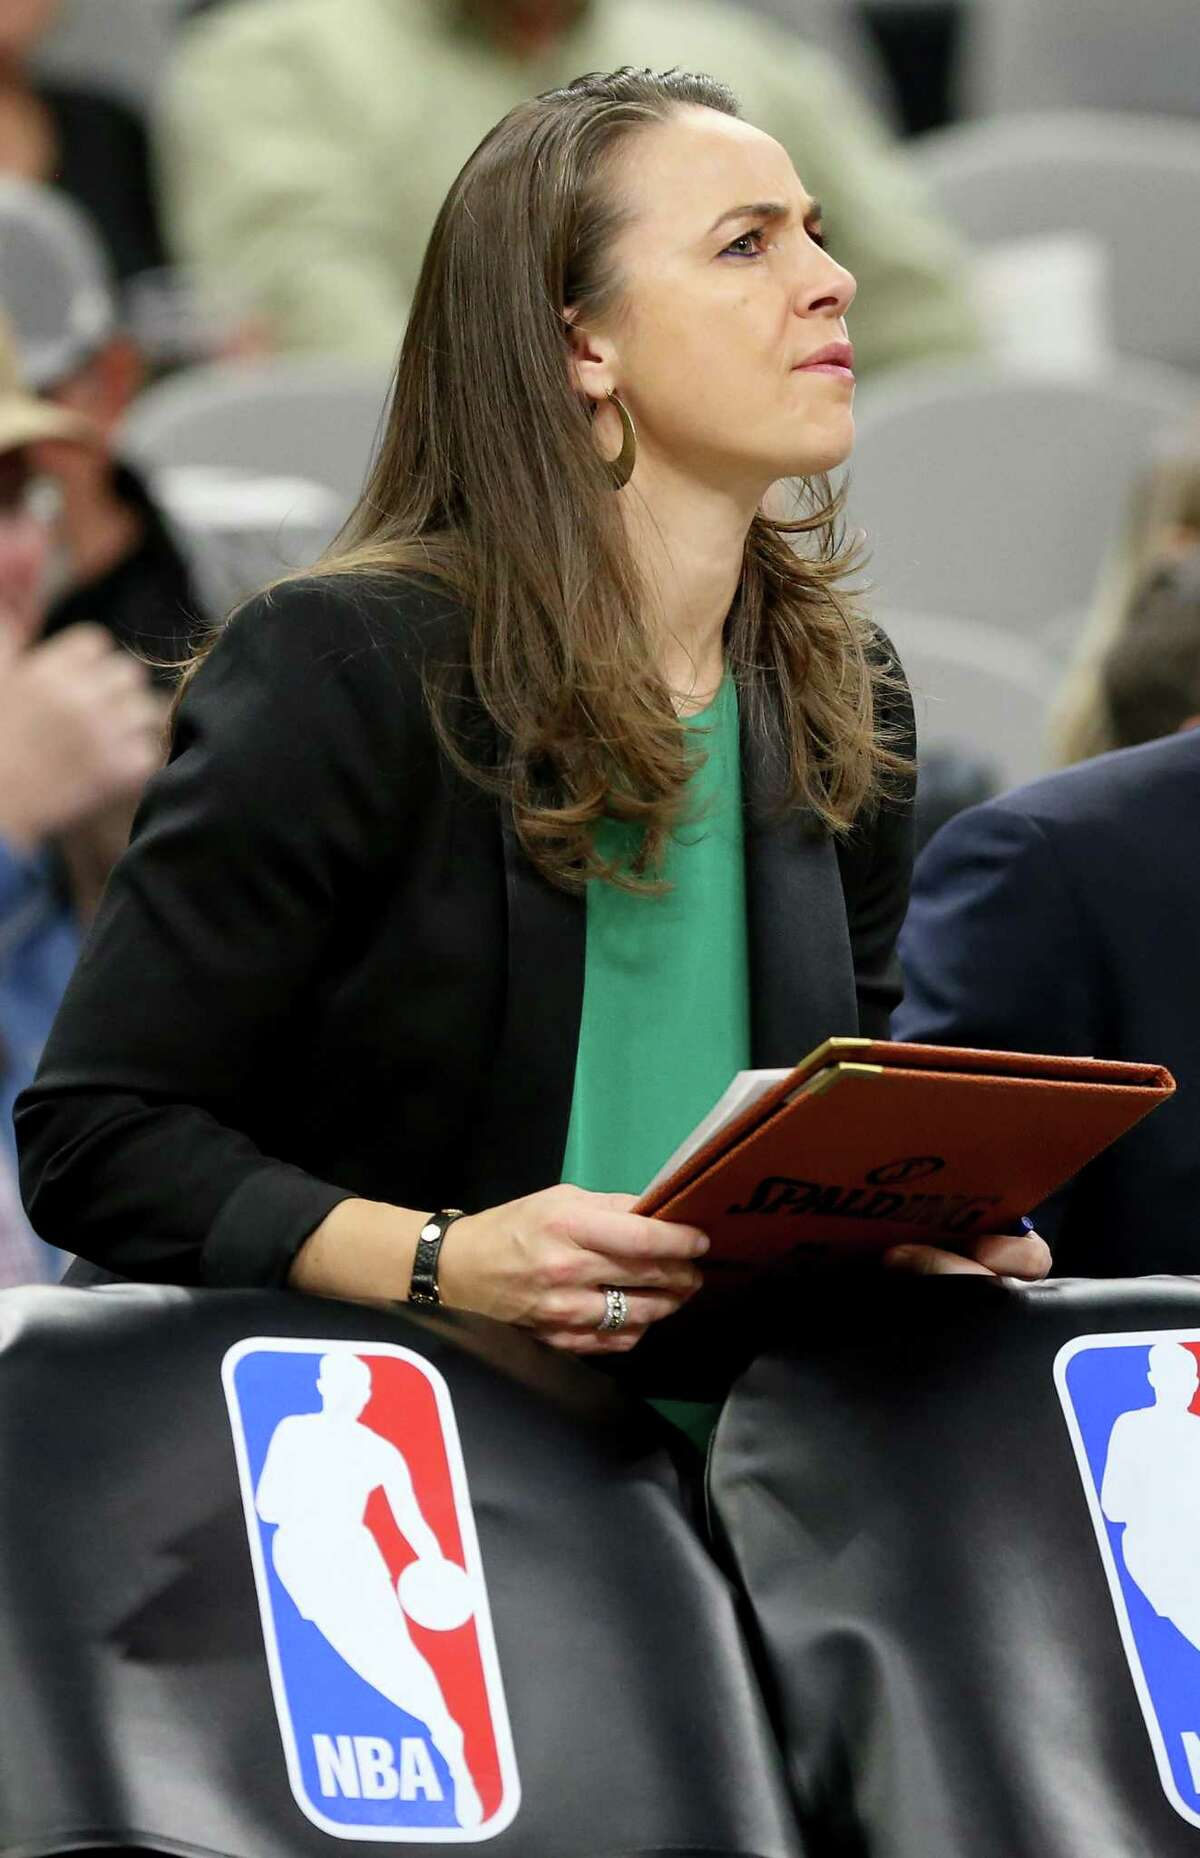 San Antonio Spurs assistant coach Becky Hammon pauses during a first half timeout against the Dallas Mavericks Sunday Jan. 29, 2017 at the AT&T Center.